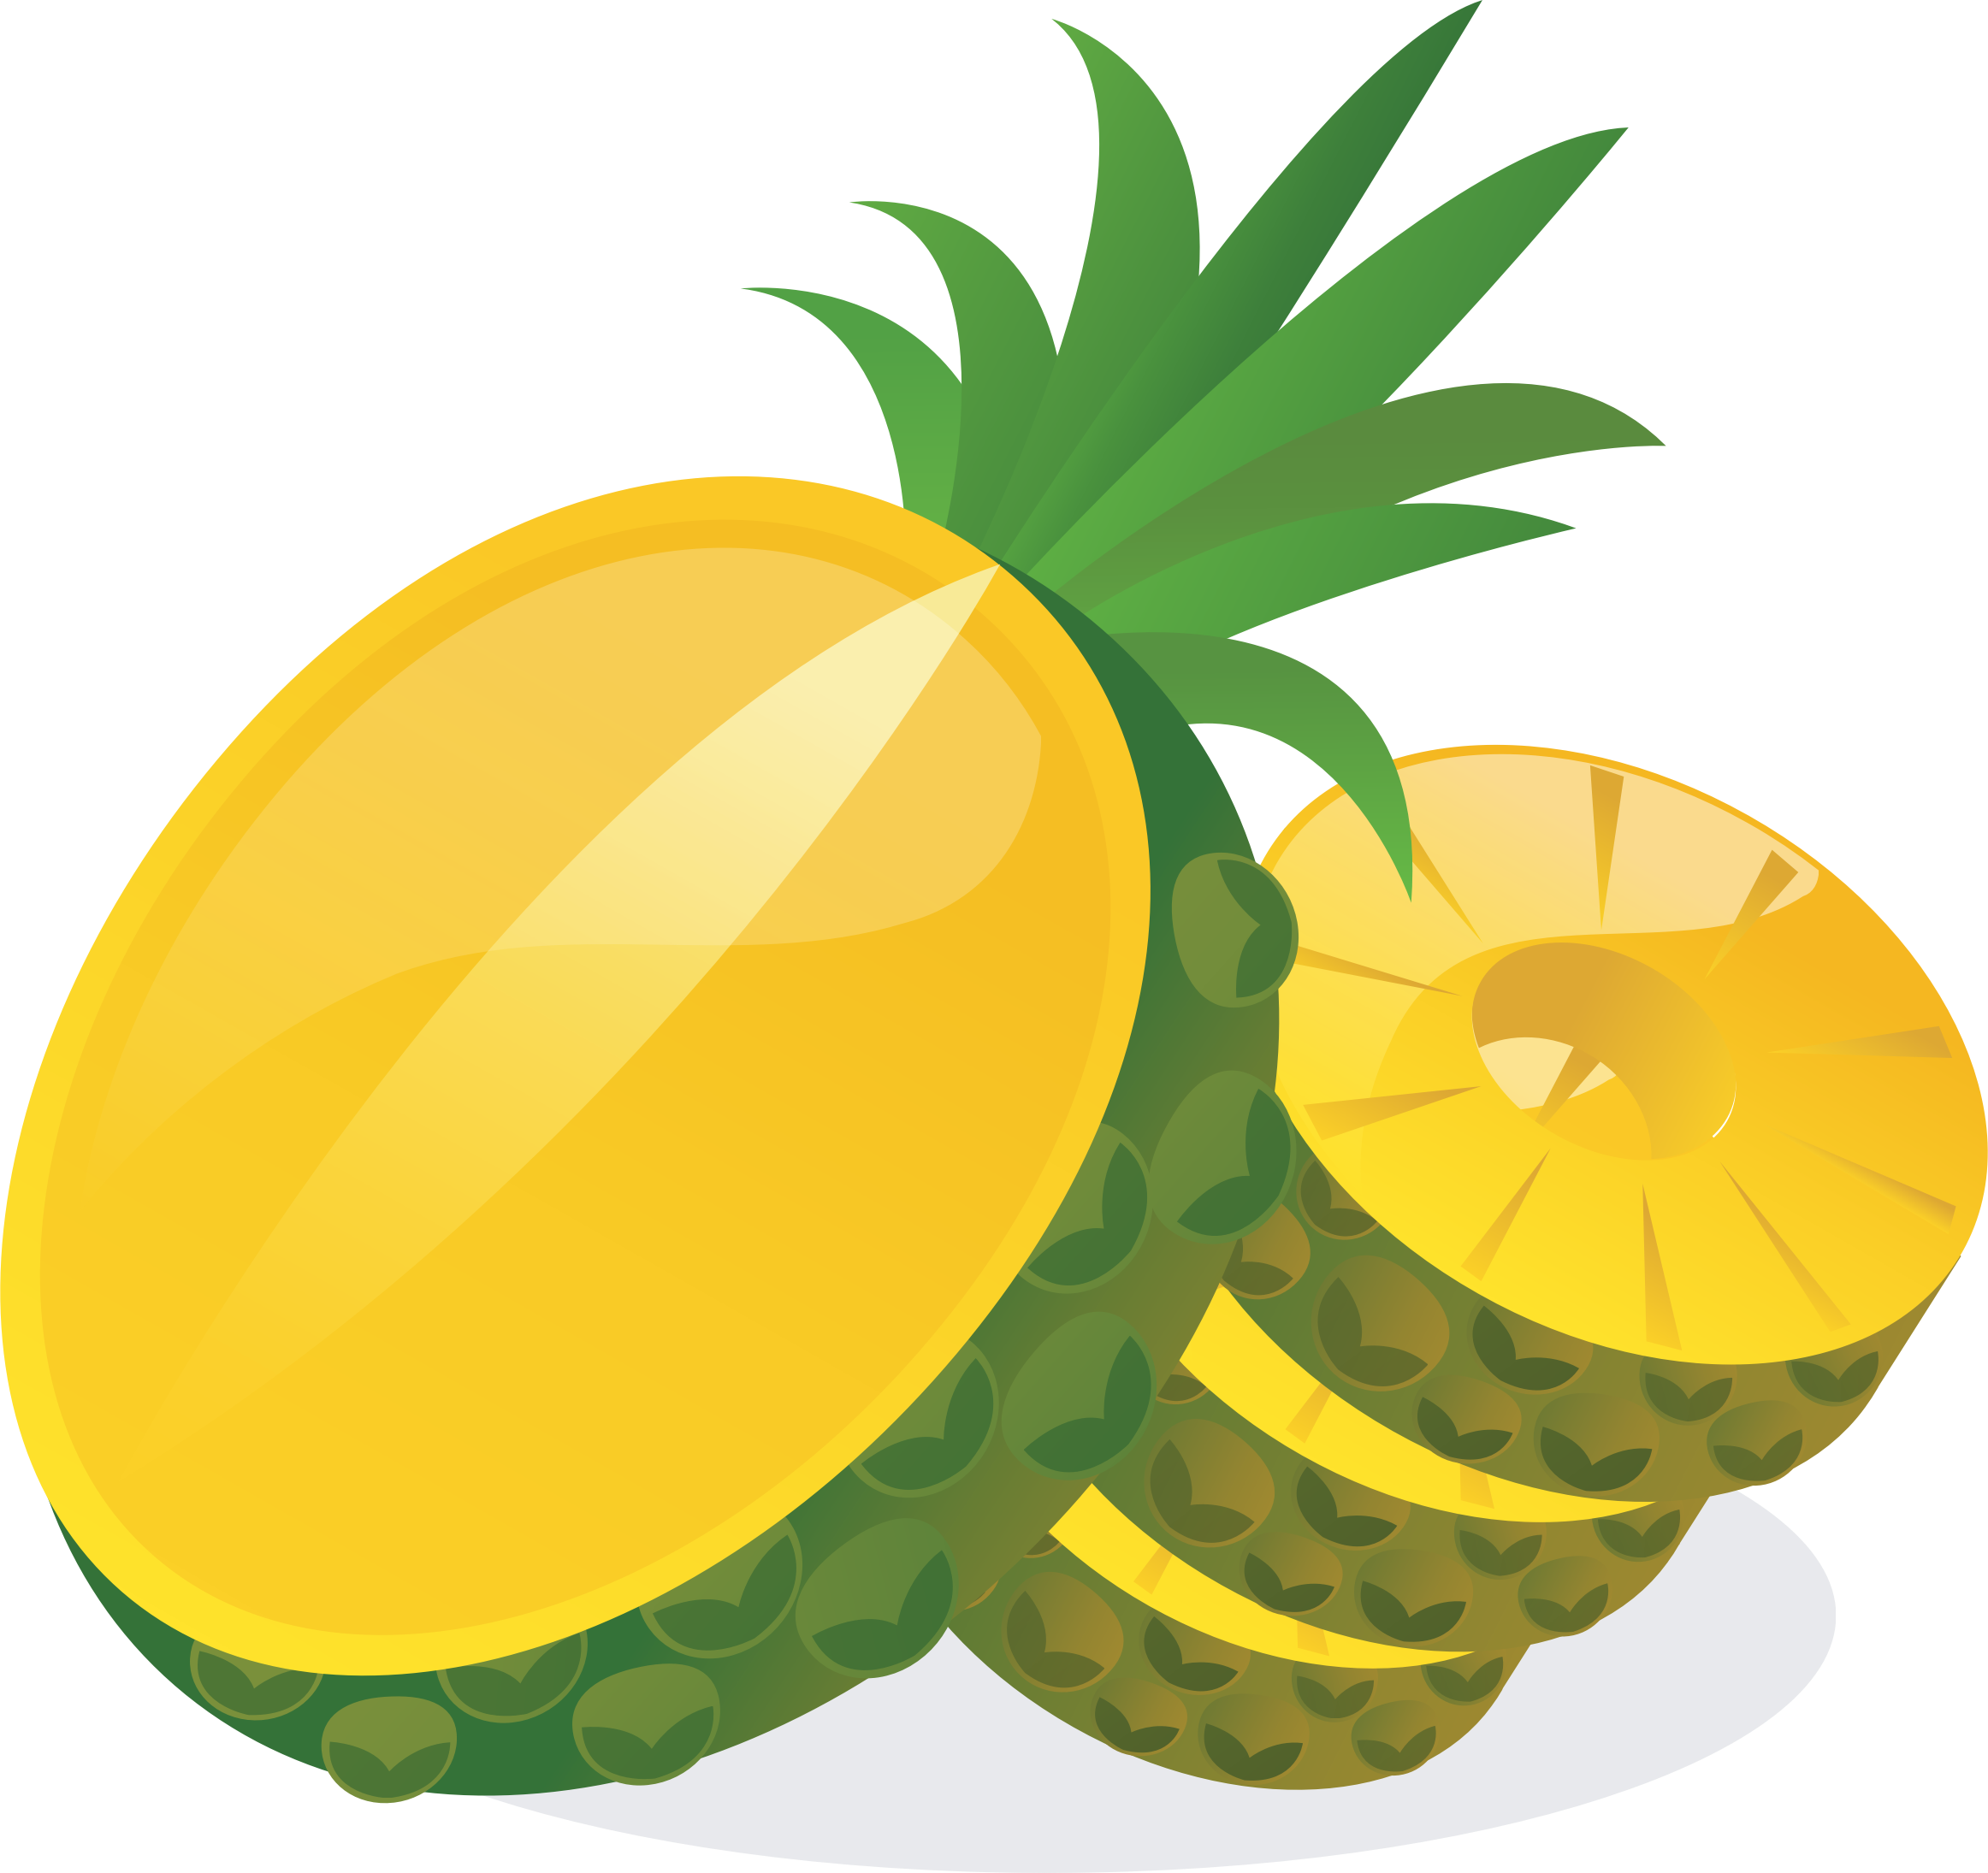 Leaf clipart pineapple.